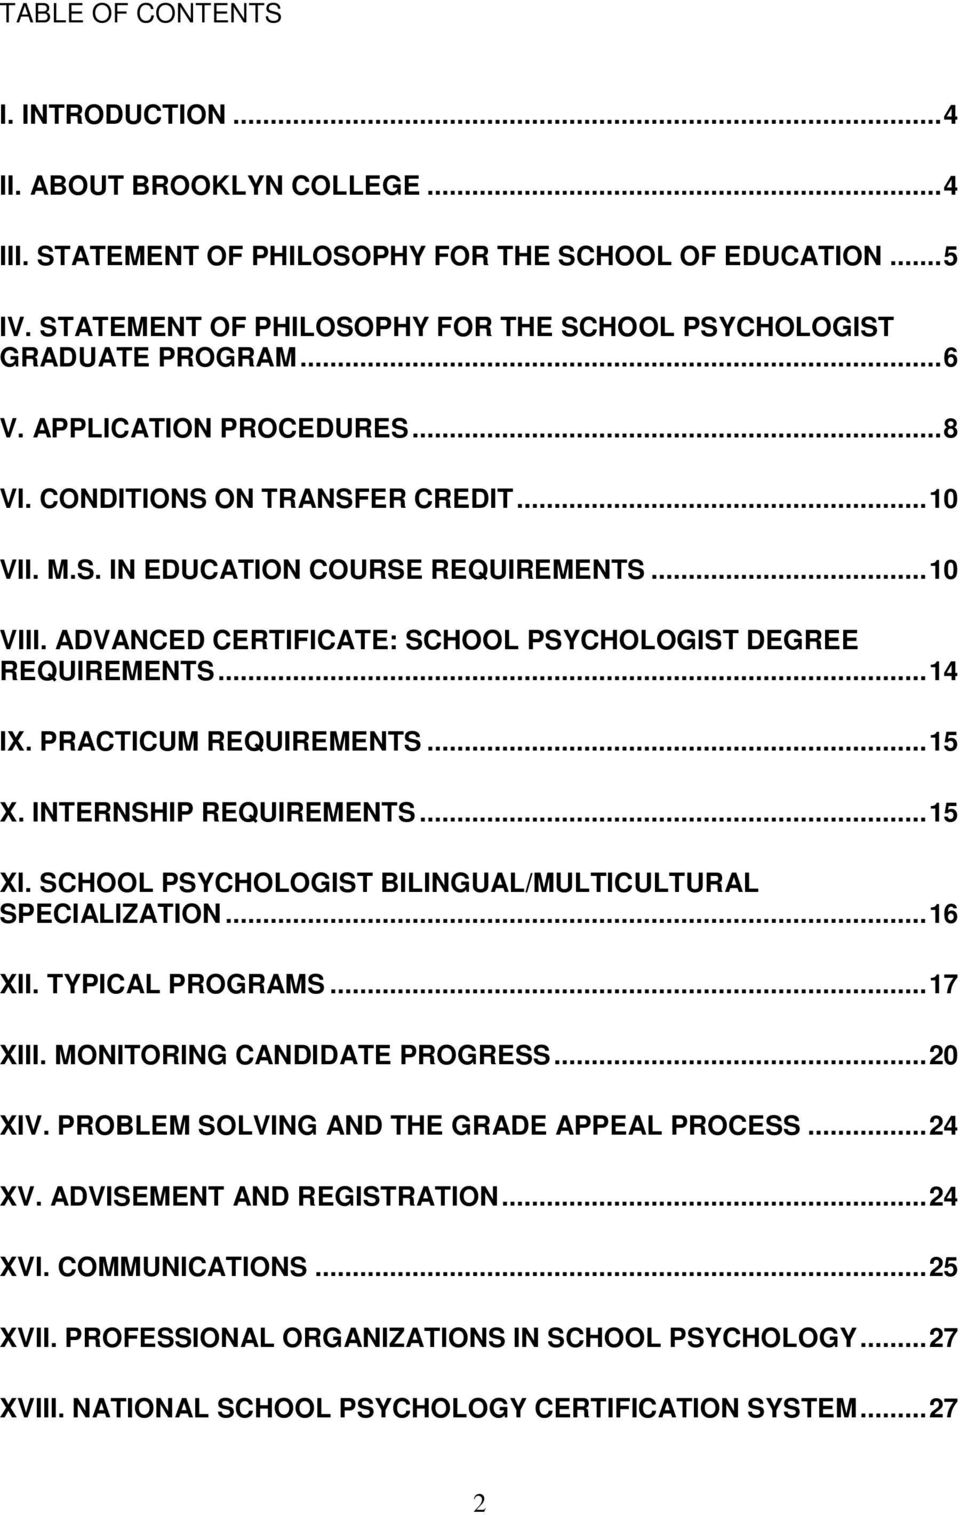 ADVANCED CERTIFICATE: SCHOOL PSYCHOLOGIST DEGREE REQUIREMENTS... 14 IX. PRACTICUM REQUIREMENTS... 15 X. INTERNSHIP REQUIREMENTS... 15 XI. SCHOOL PSYCHOLOGIST BILINGUAL/MULTICULTURAL SPECIALIZATION.